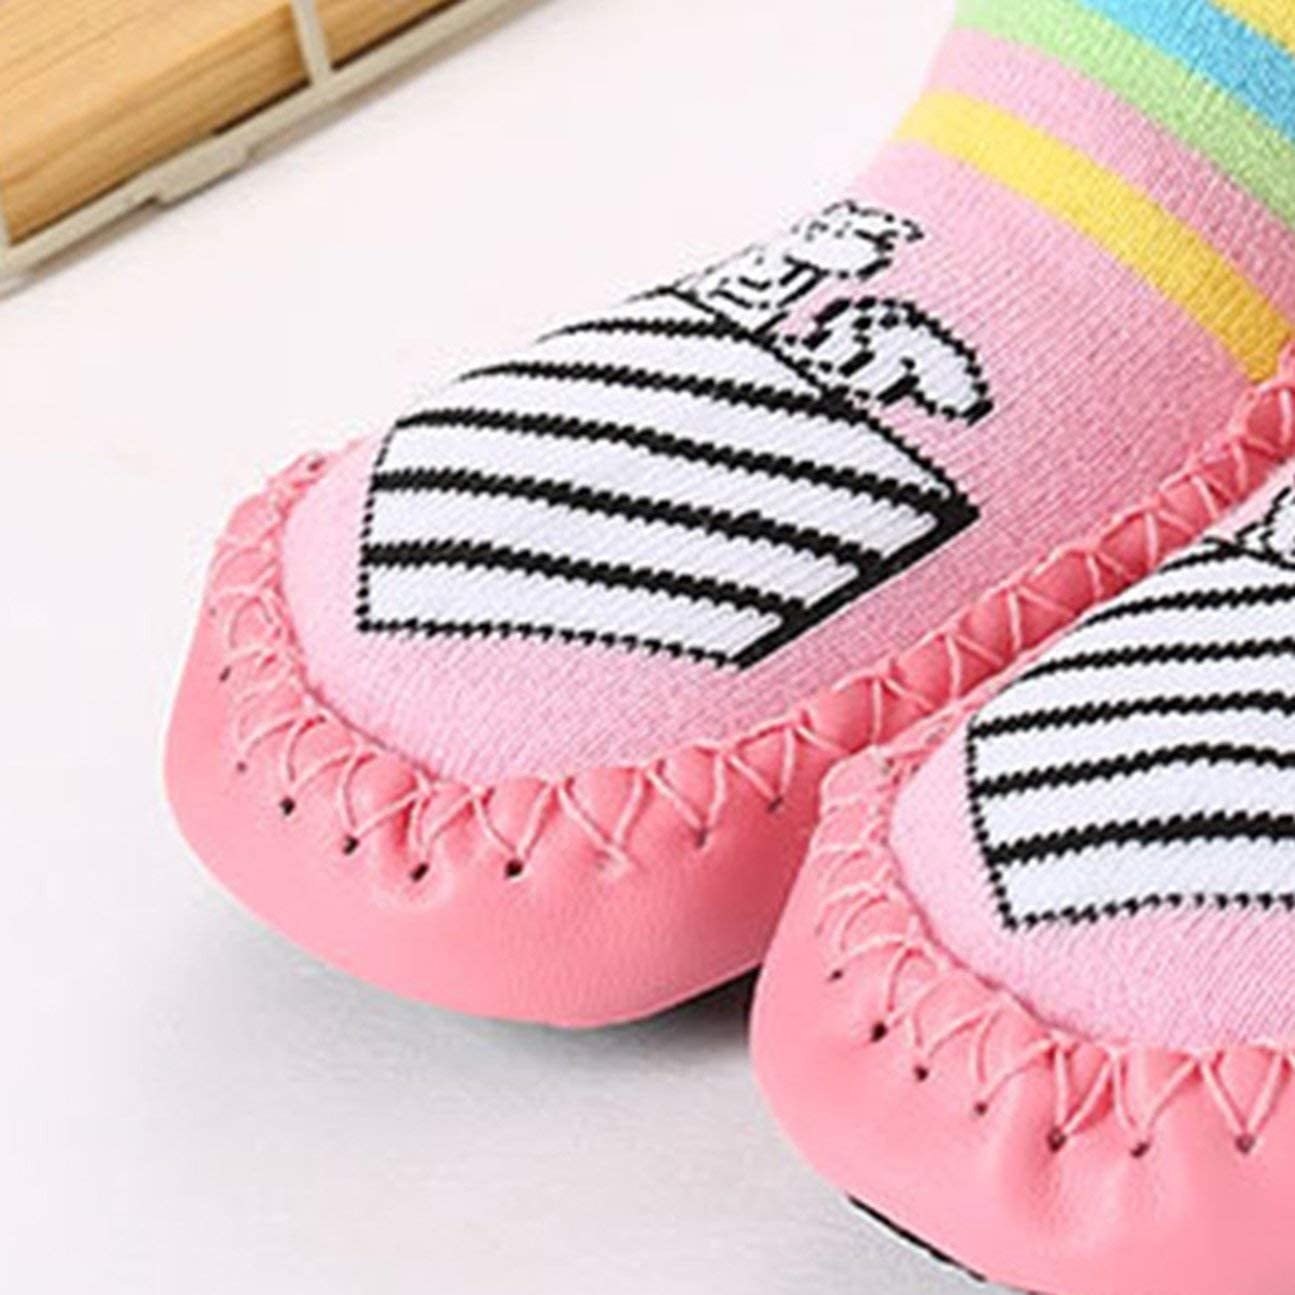 Whiteswan Autumn Winter Comfortable Keep Warm Cute Cartoon Printed Kids Toddler Baby Anti-Slip Sock Shoes Boots Slipper Socks